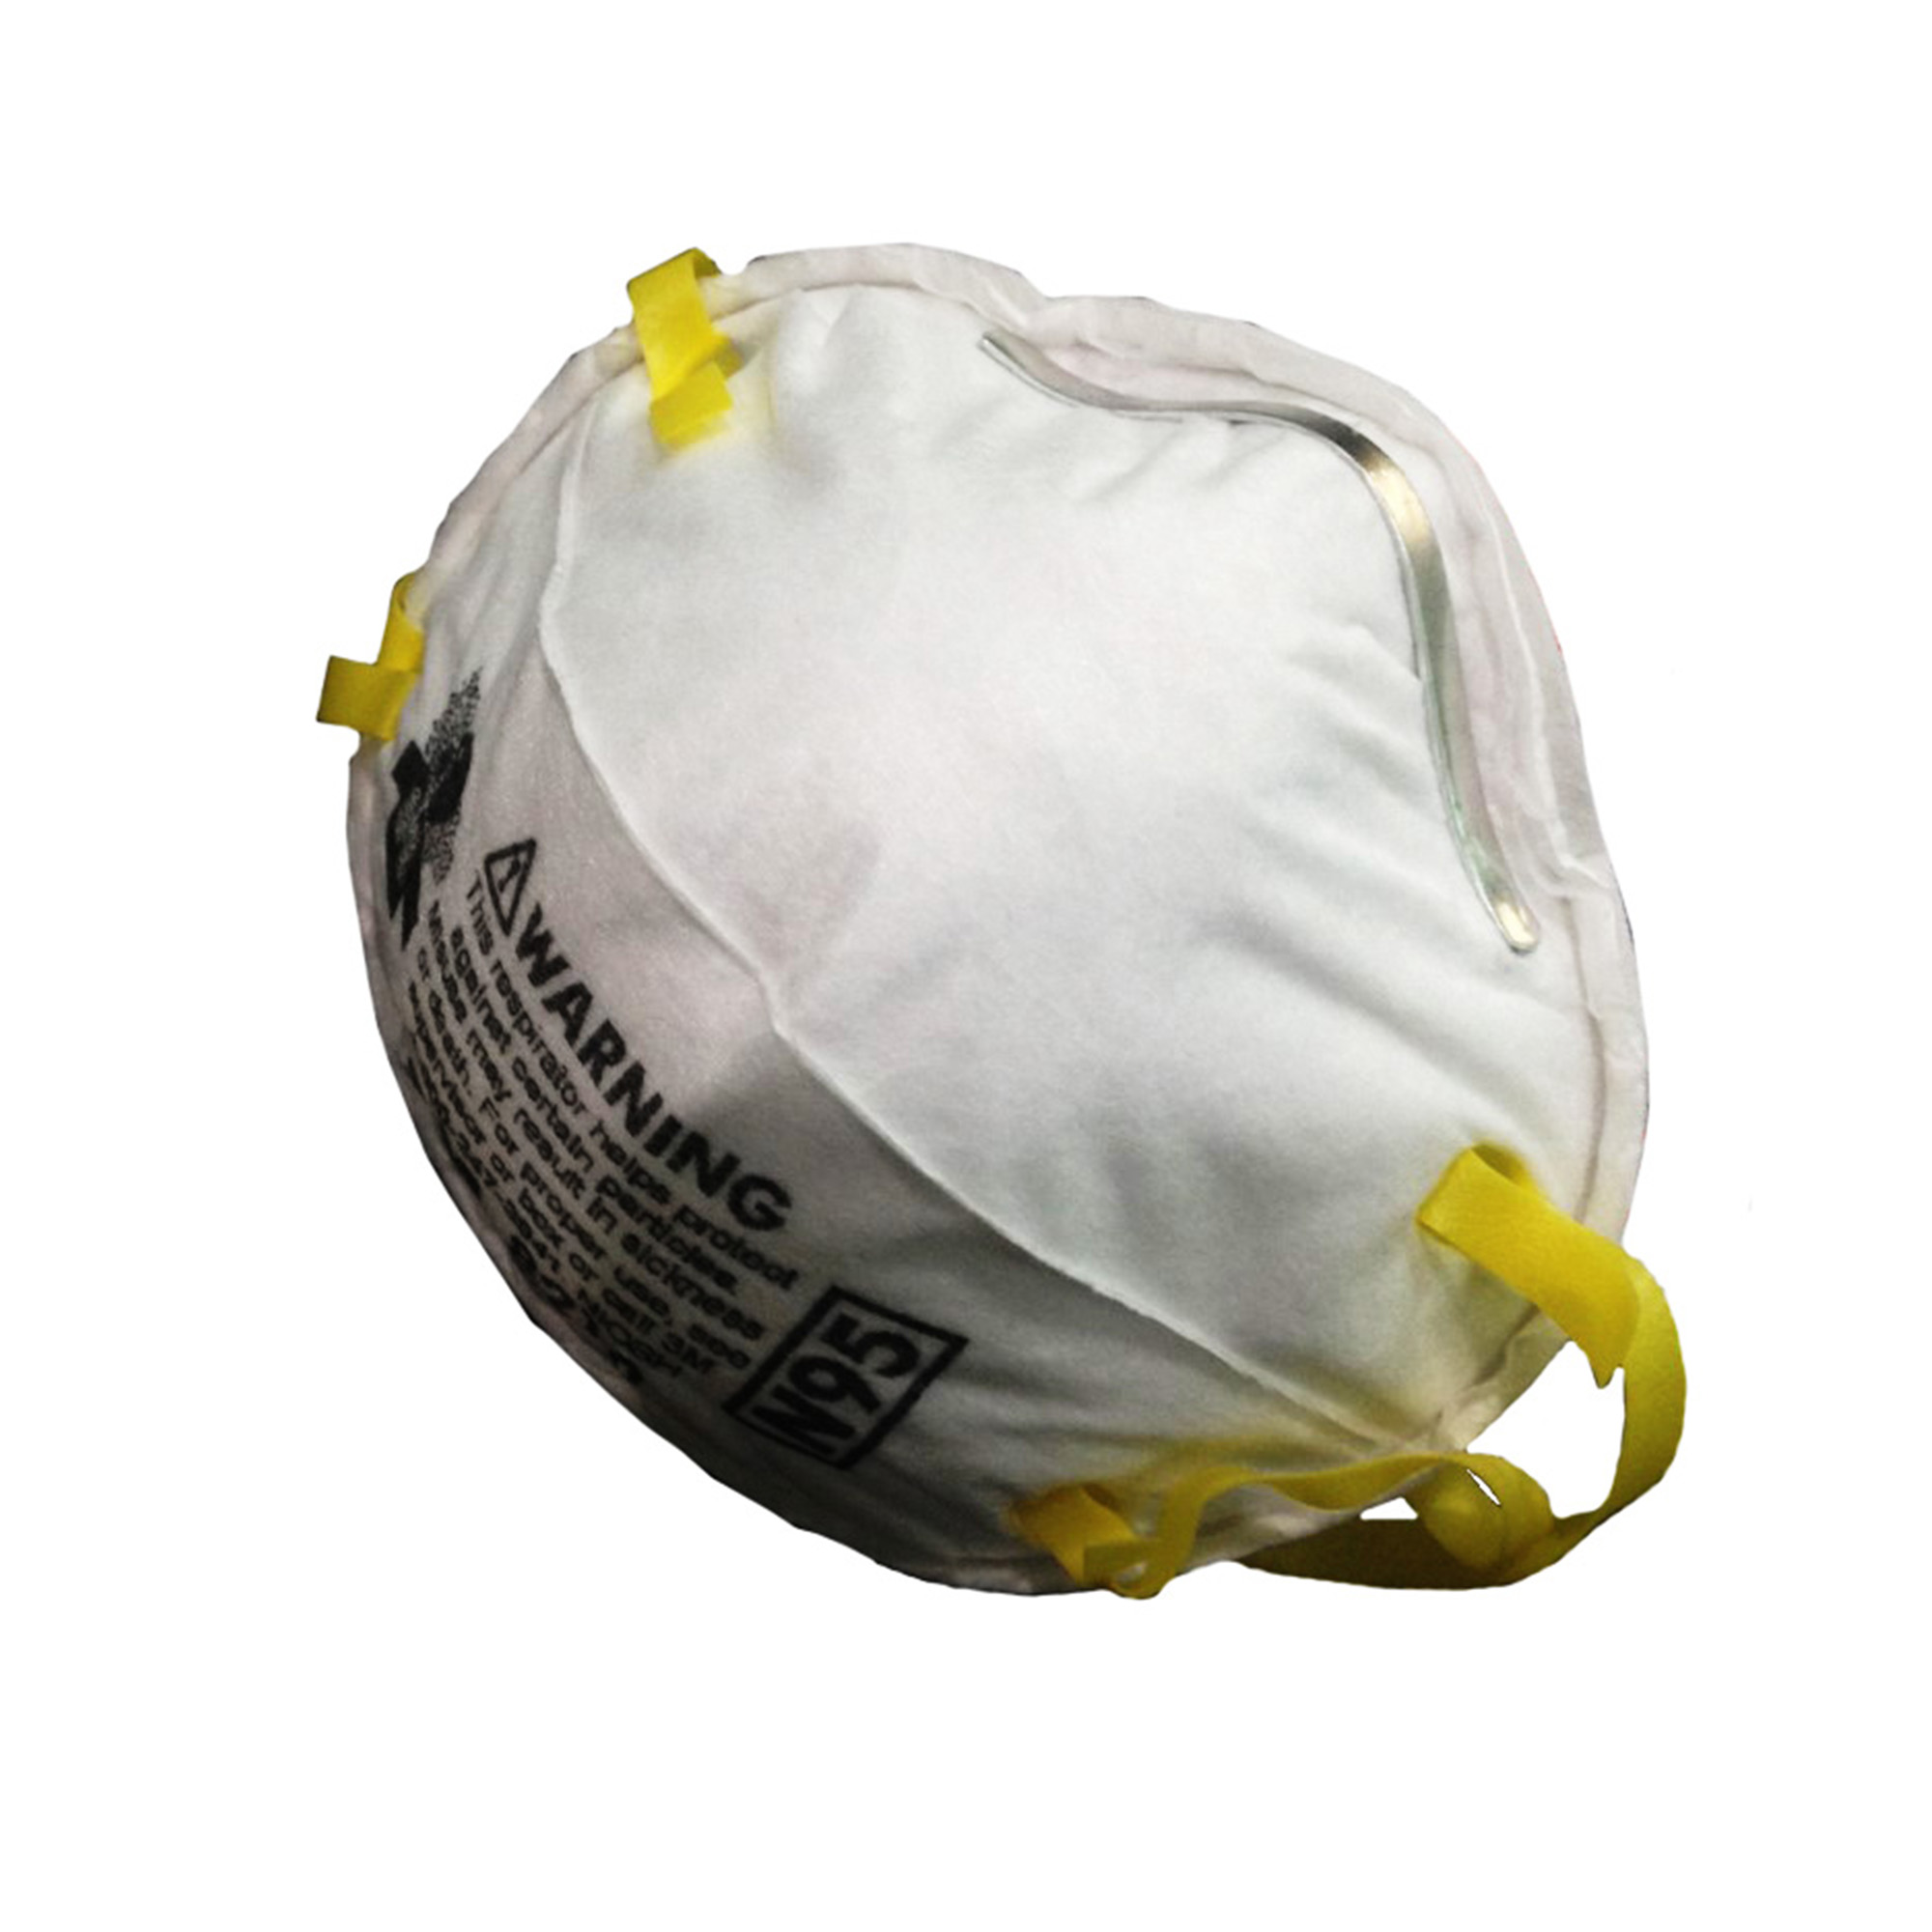 N95 Masks Dust Dust N95 Masks Dust N95 Dust Masks Masks N95 N95